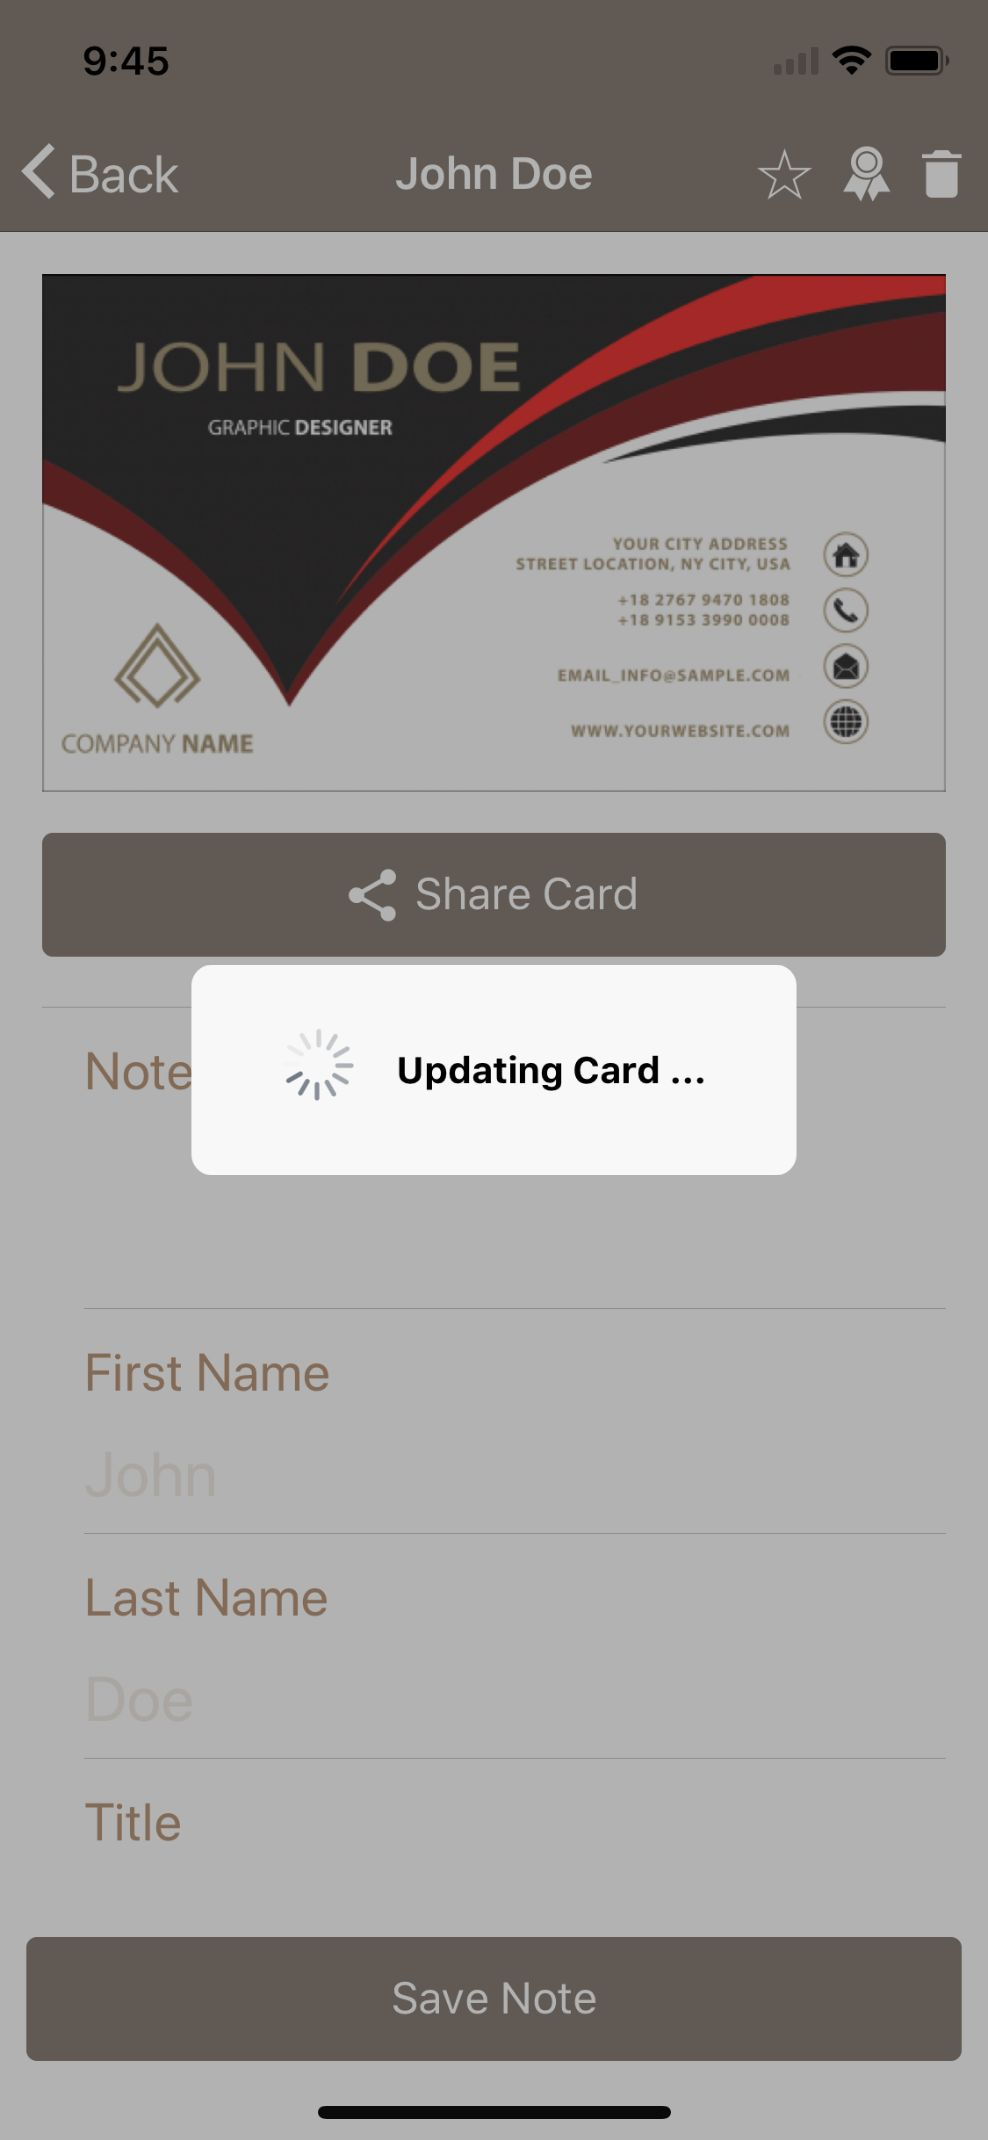 Card Sharing App in Ionic using NFC and Firebase Screenshot 12